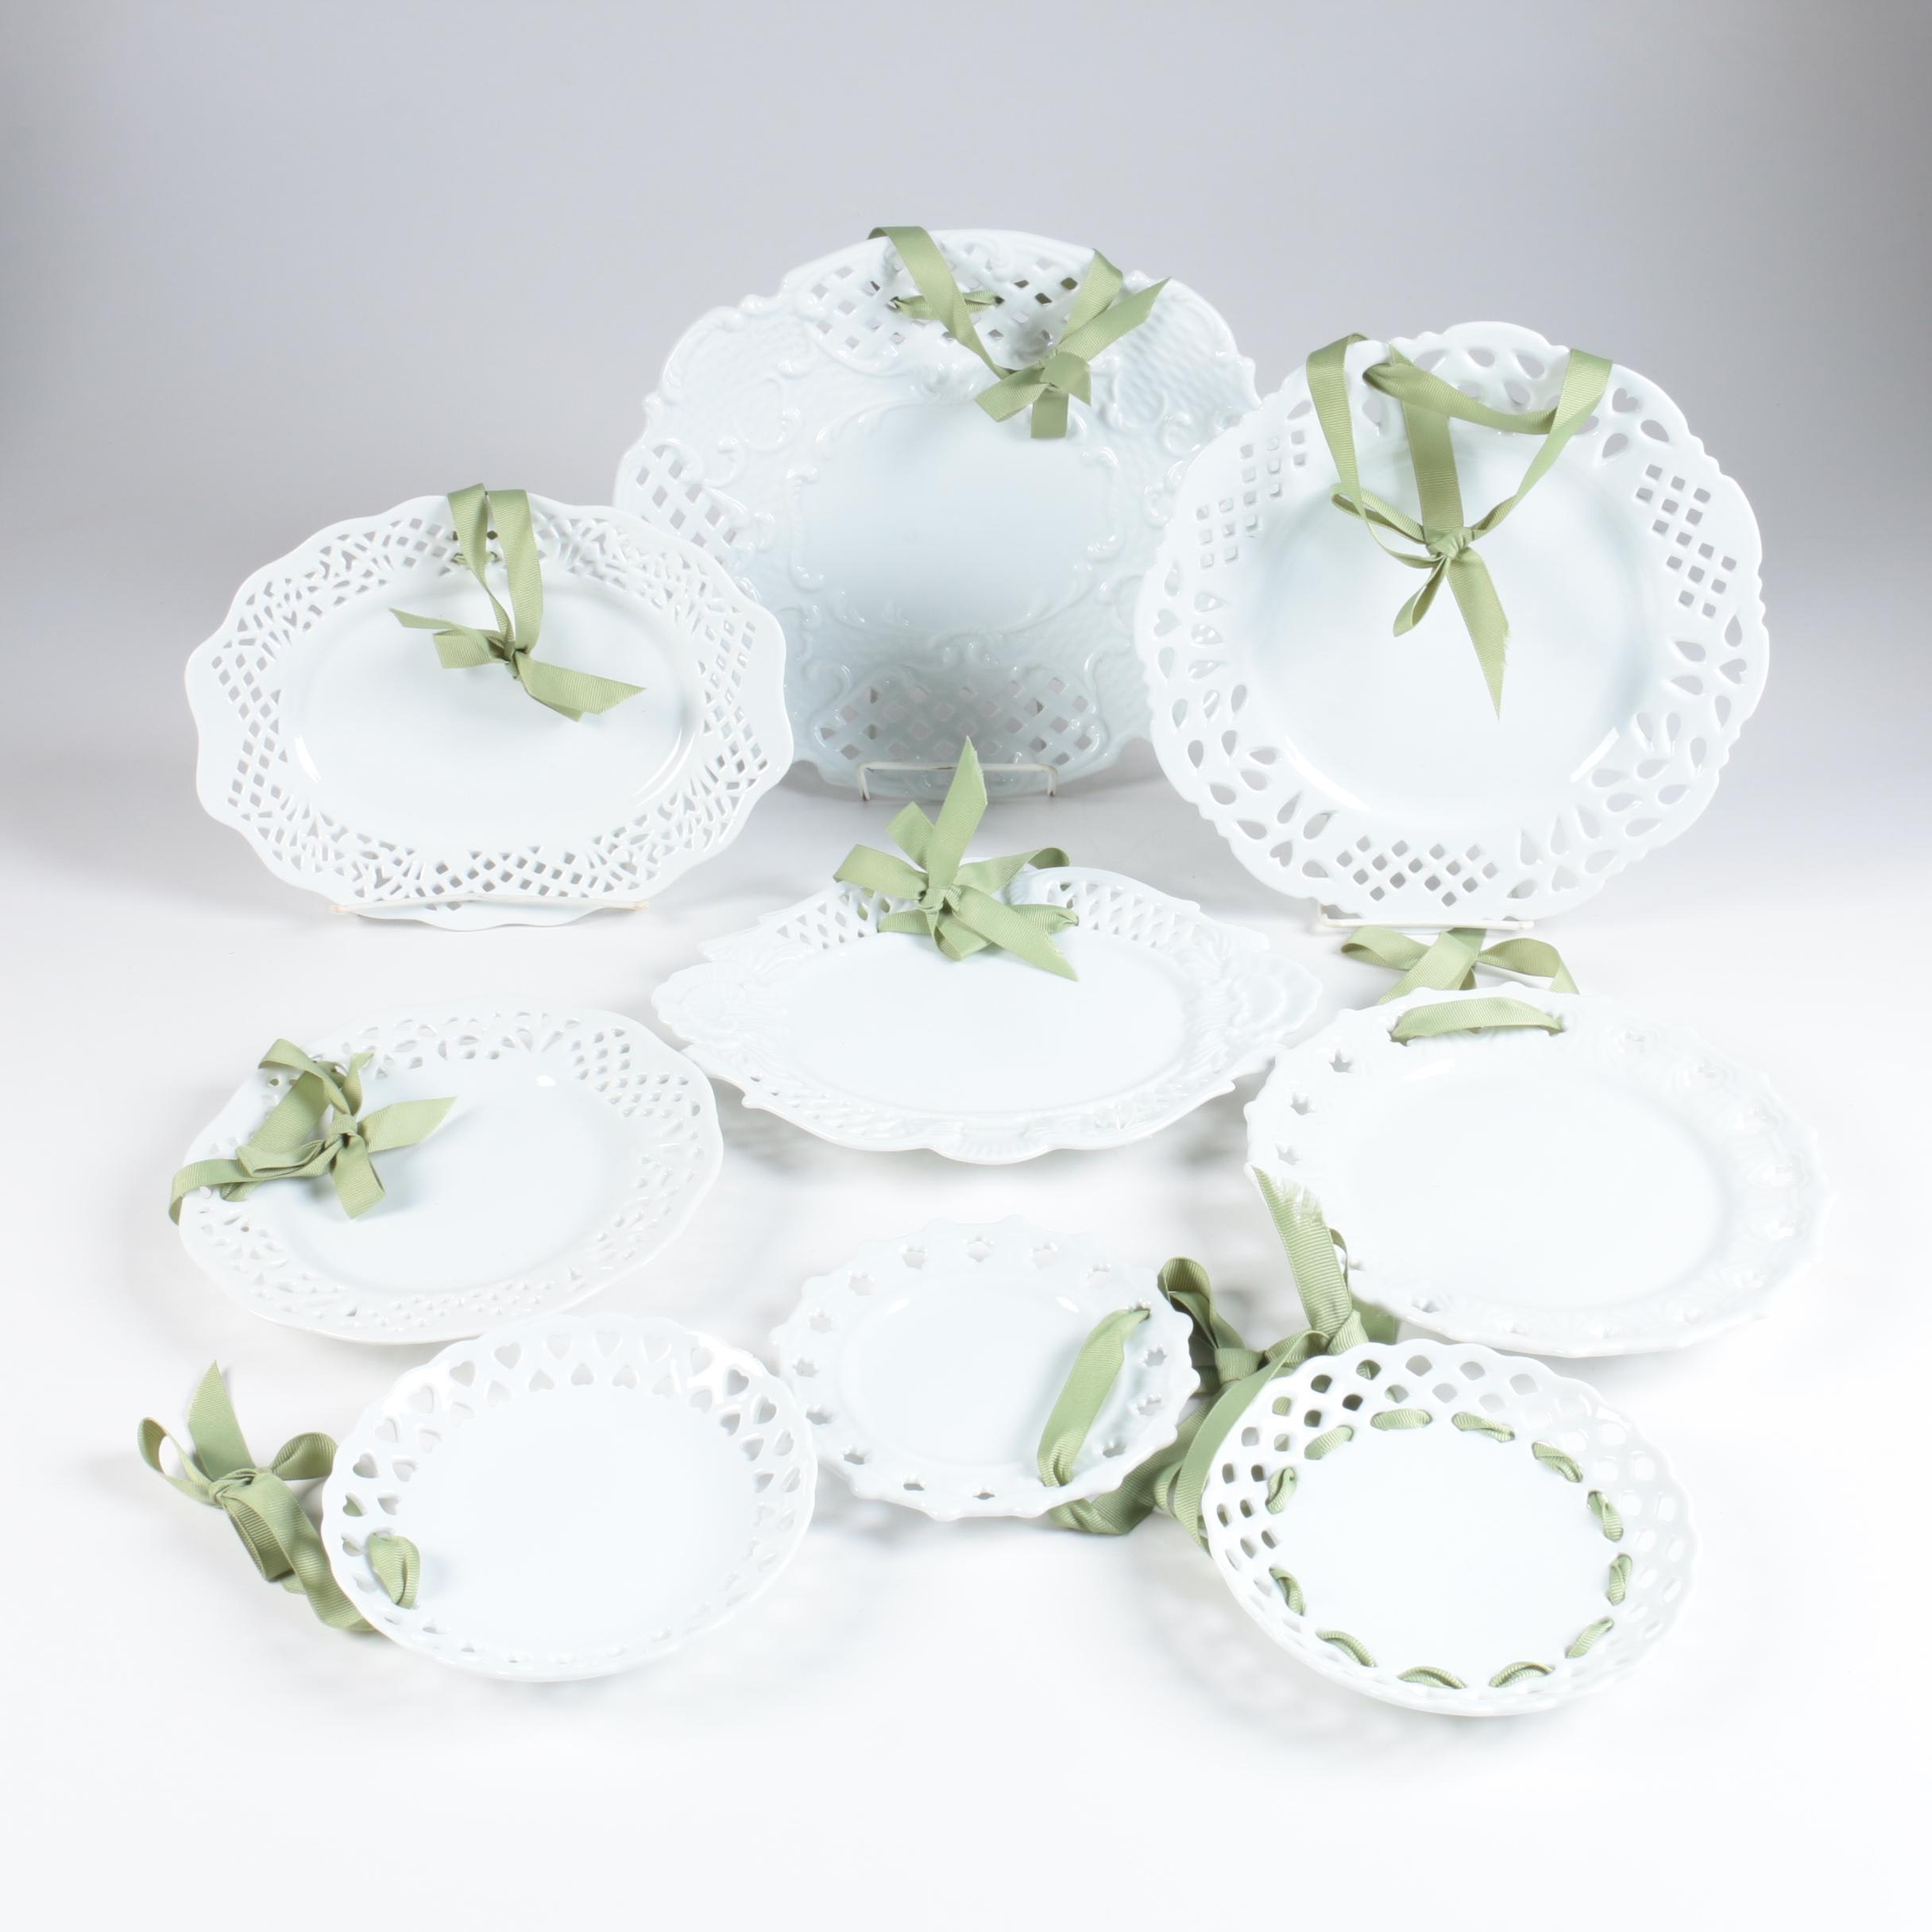 Two's Company Decorative Plates with Ribbon